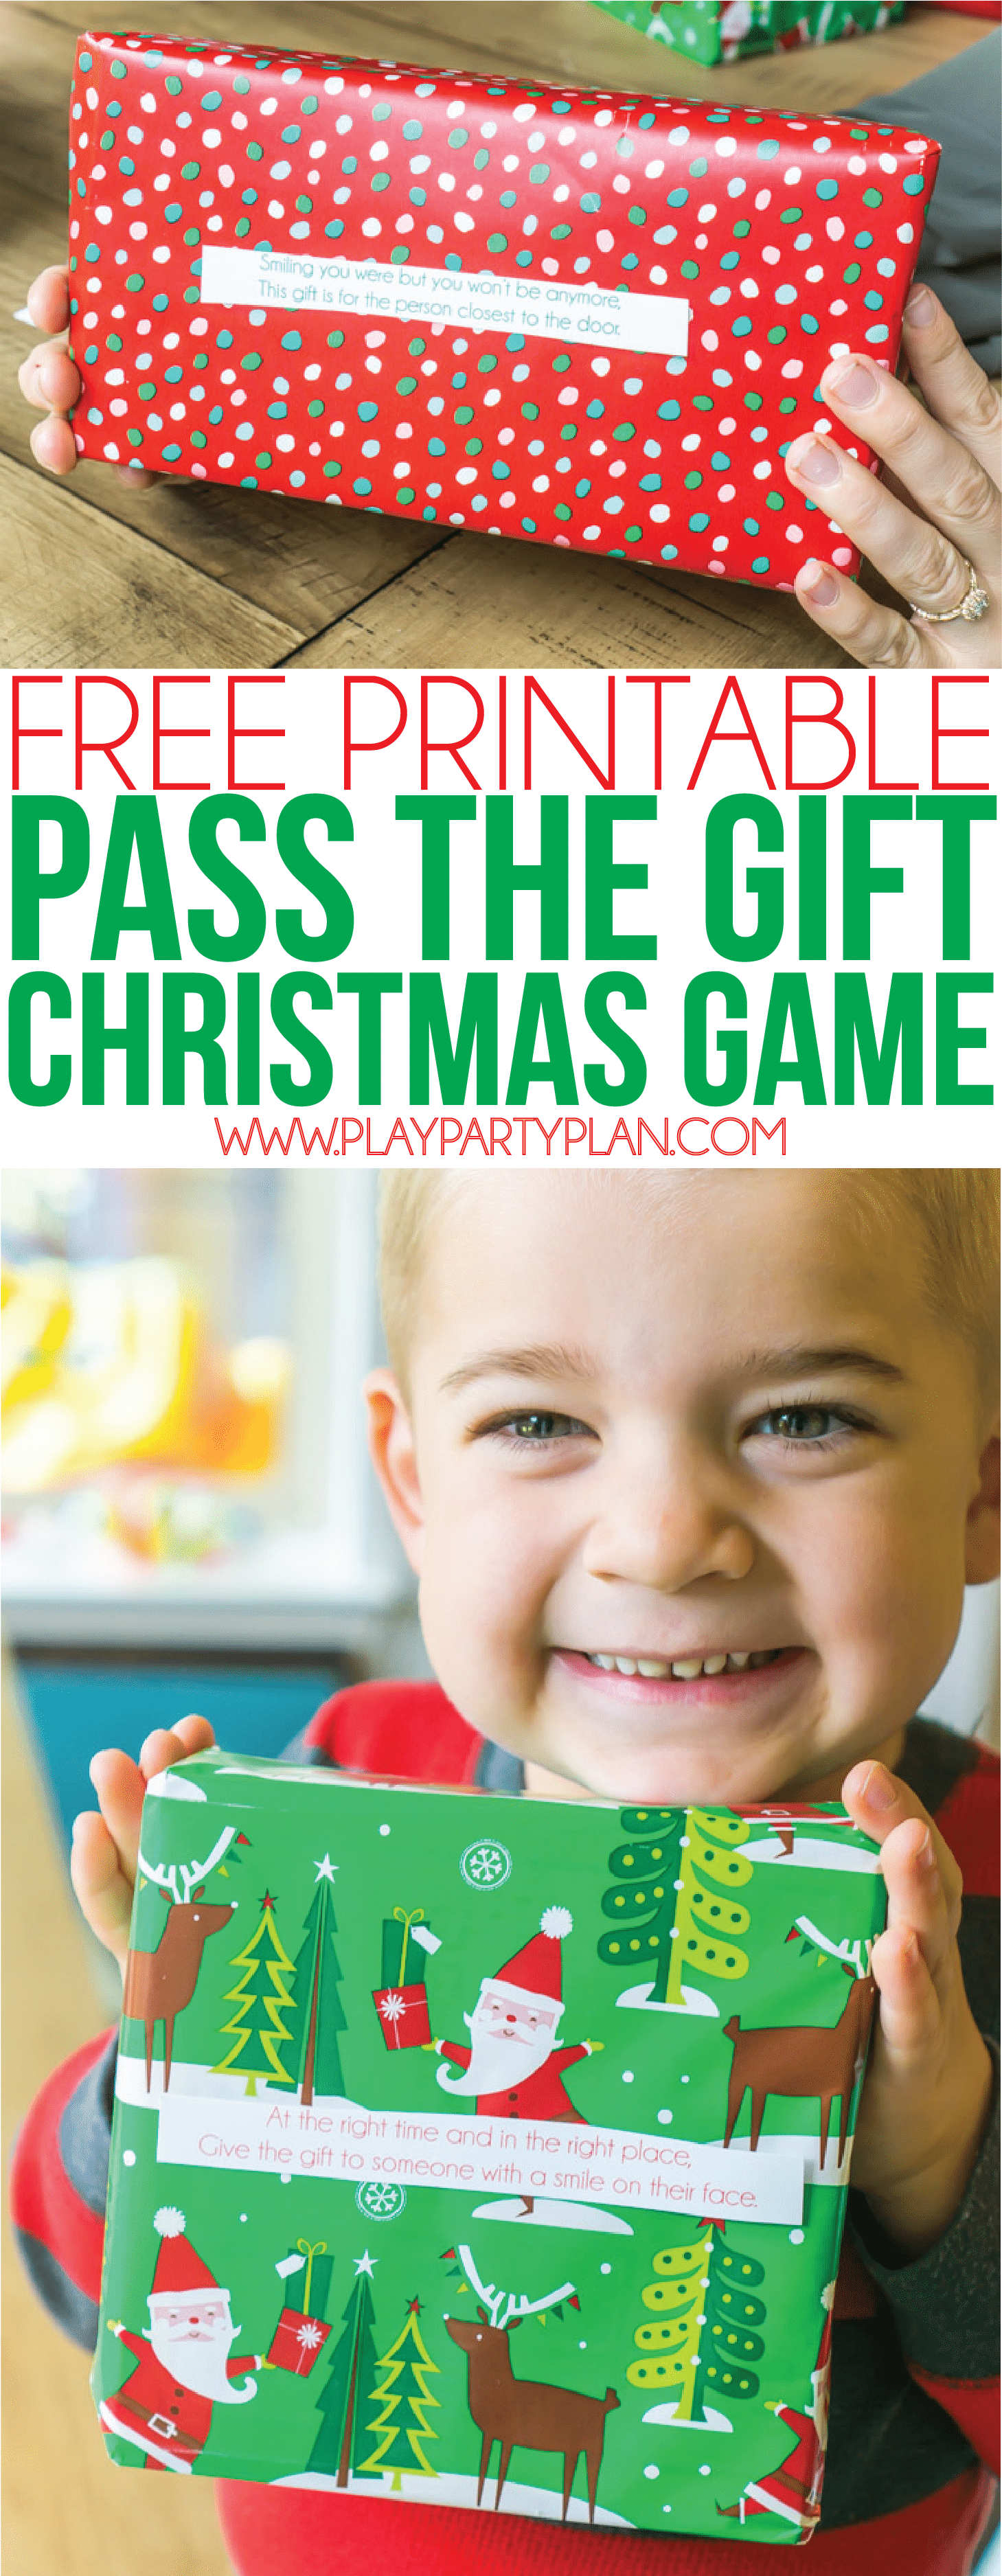 A gift exchange game perfect for holiday parties